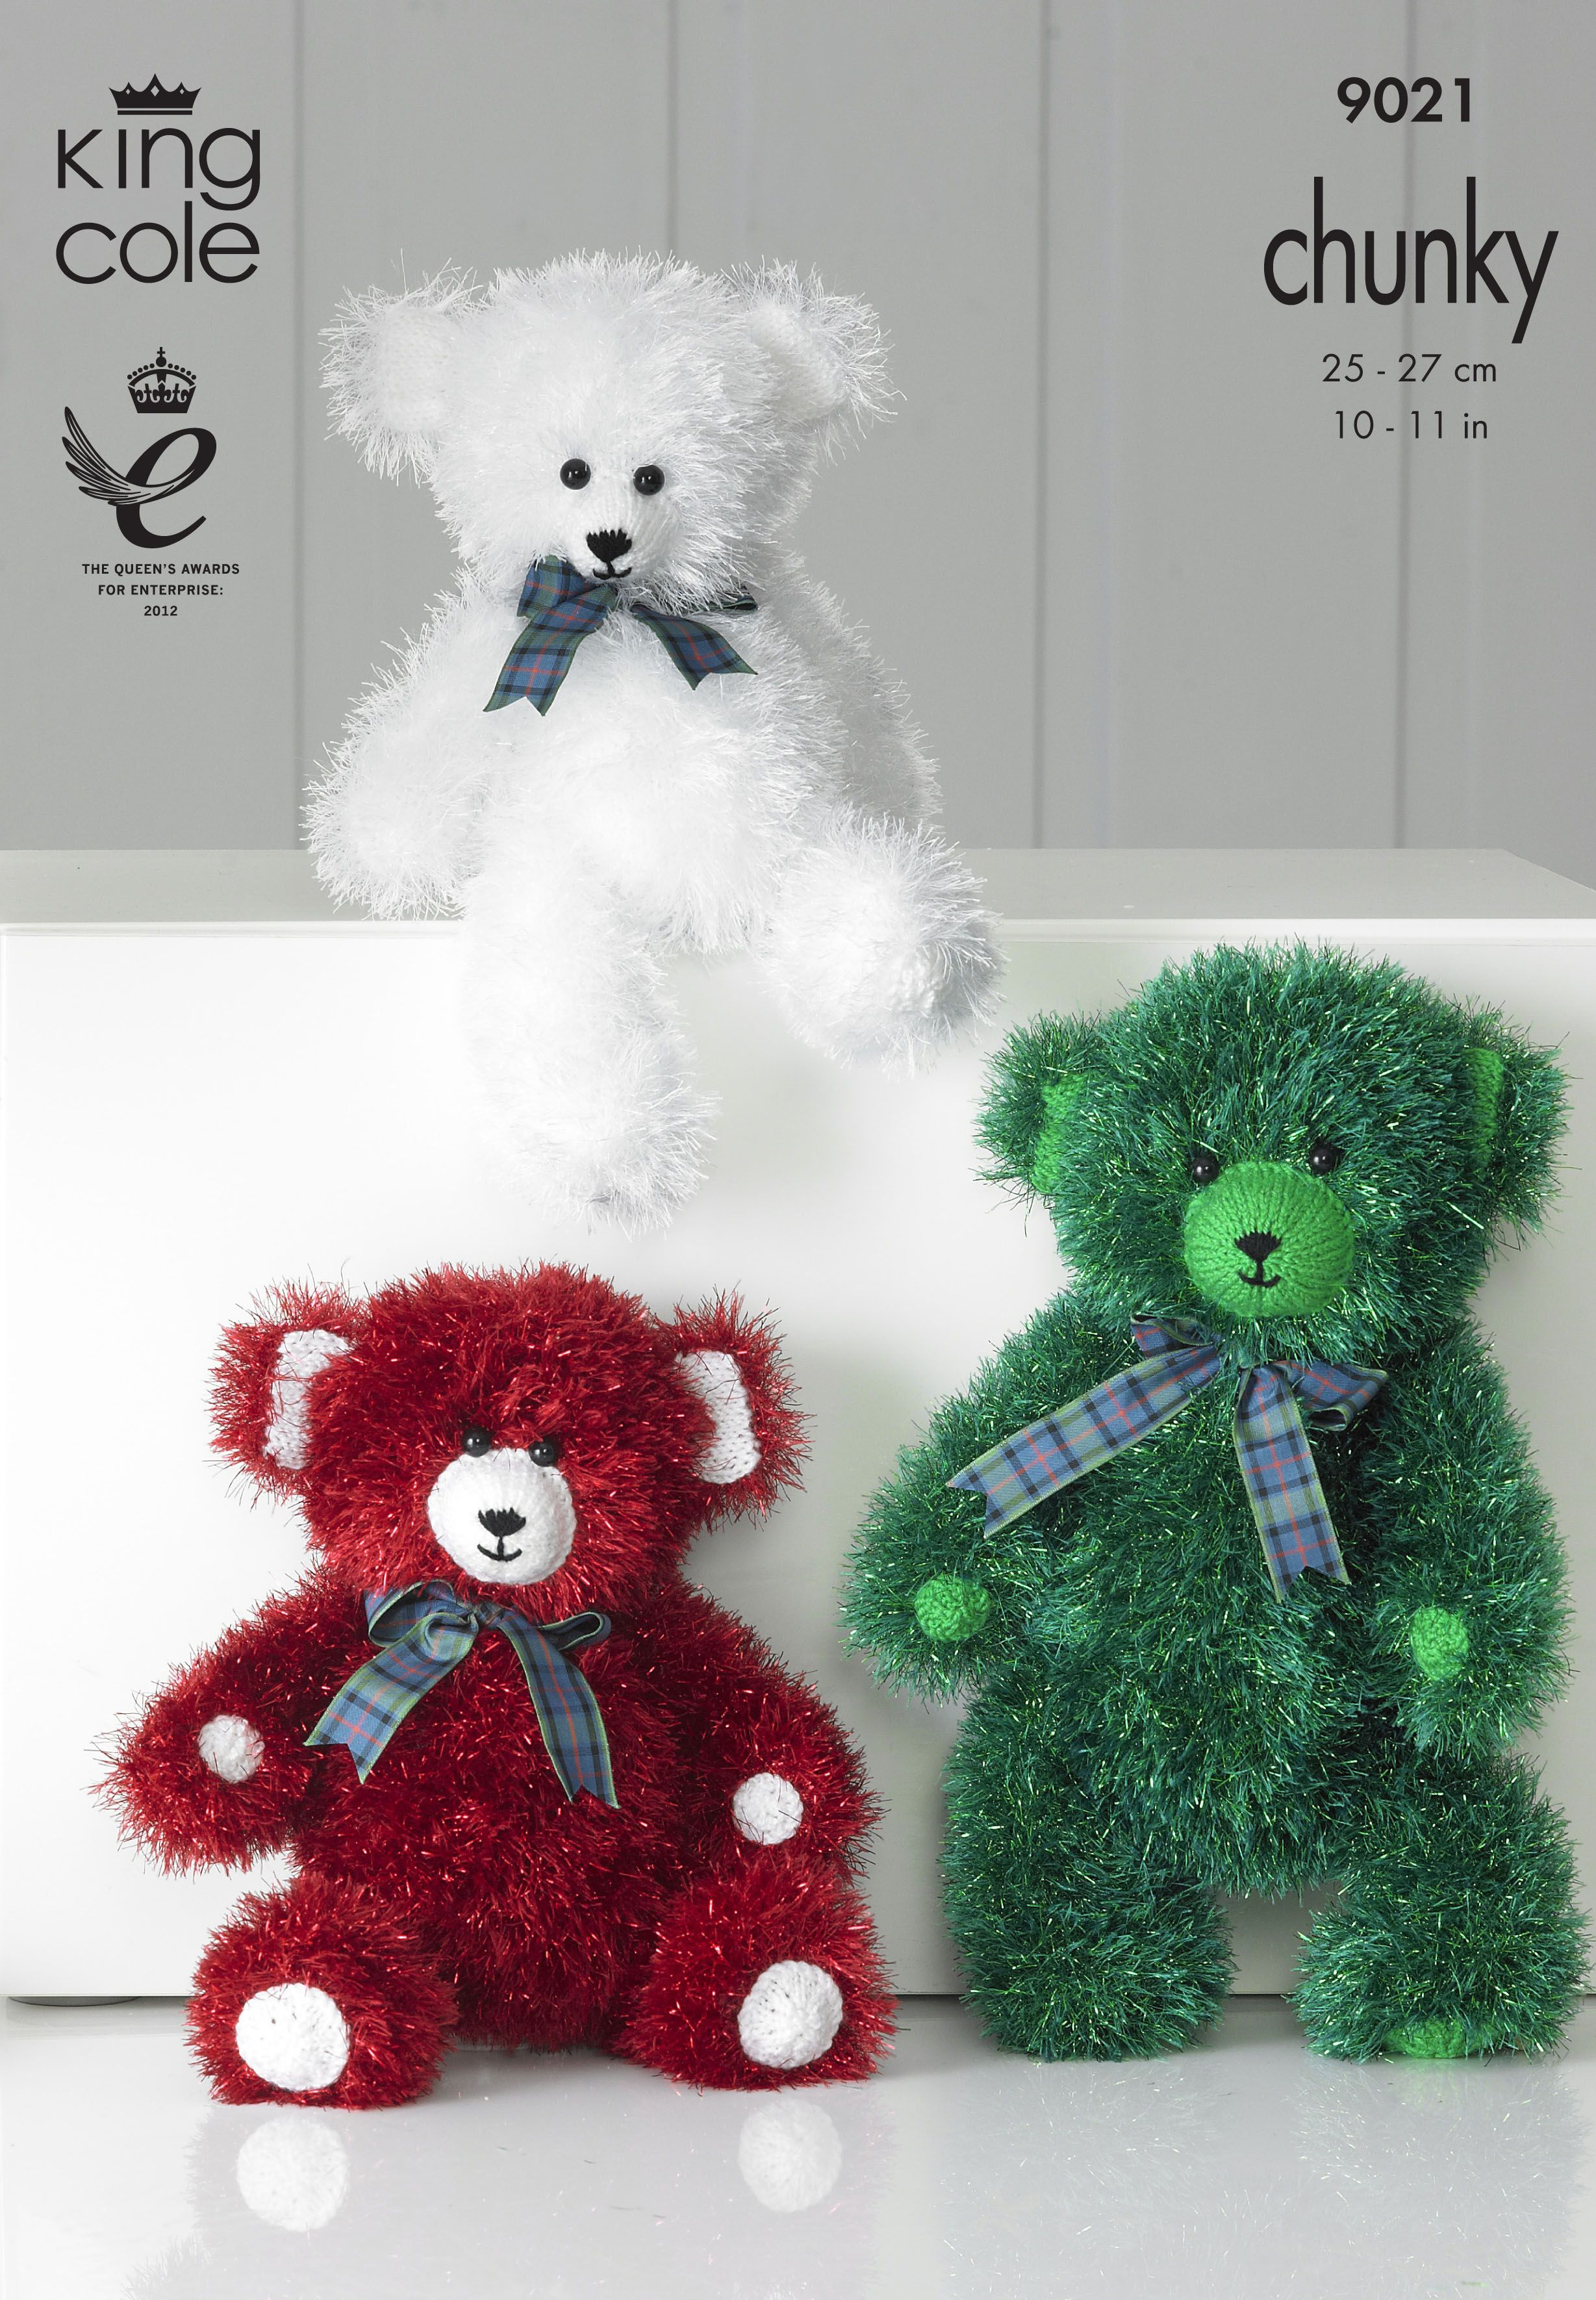 Knitted tinsel chunky teddies king cole toys and novelties king cole tinsel chunky knitting pattern 9021 teddy bear toys family to knit small large bankloansurffo Gallery